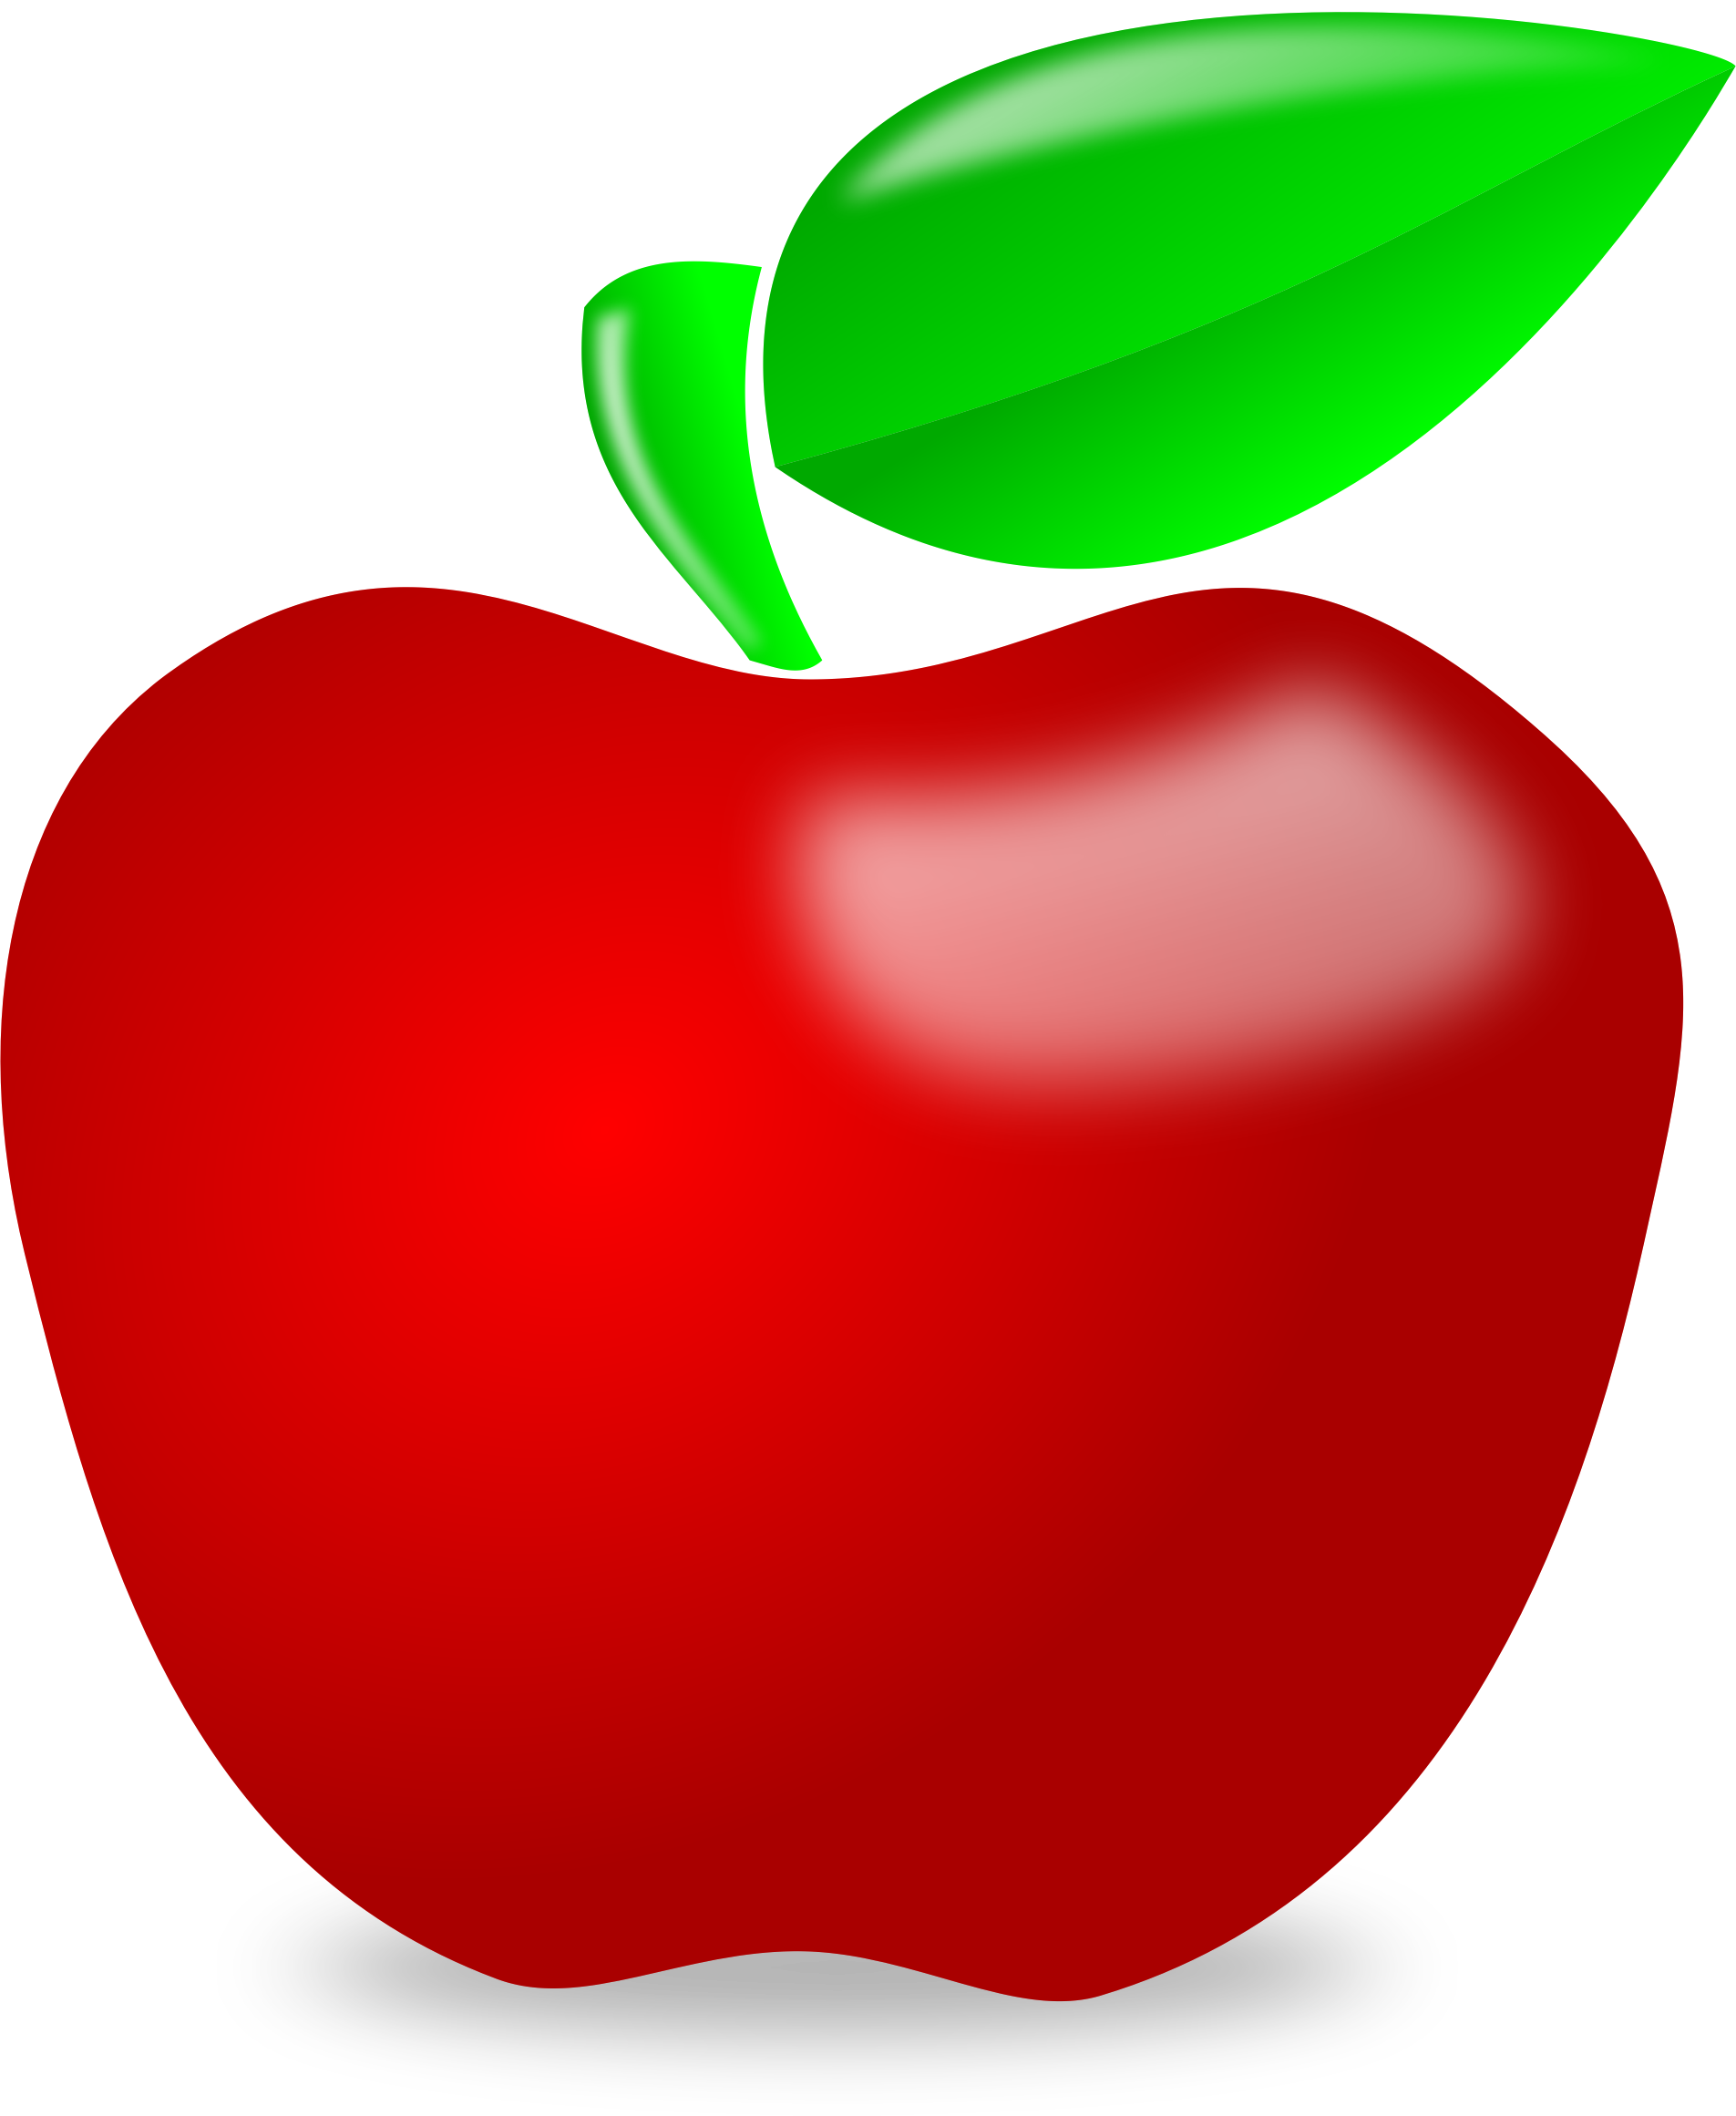 Clipart designed apple royalty free download Clipart - Glossy apple royalty free download